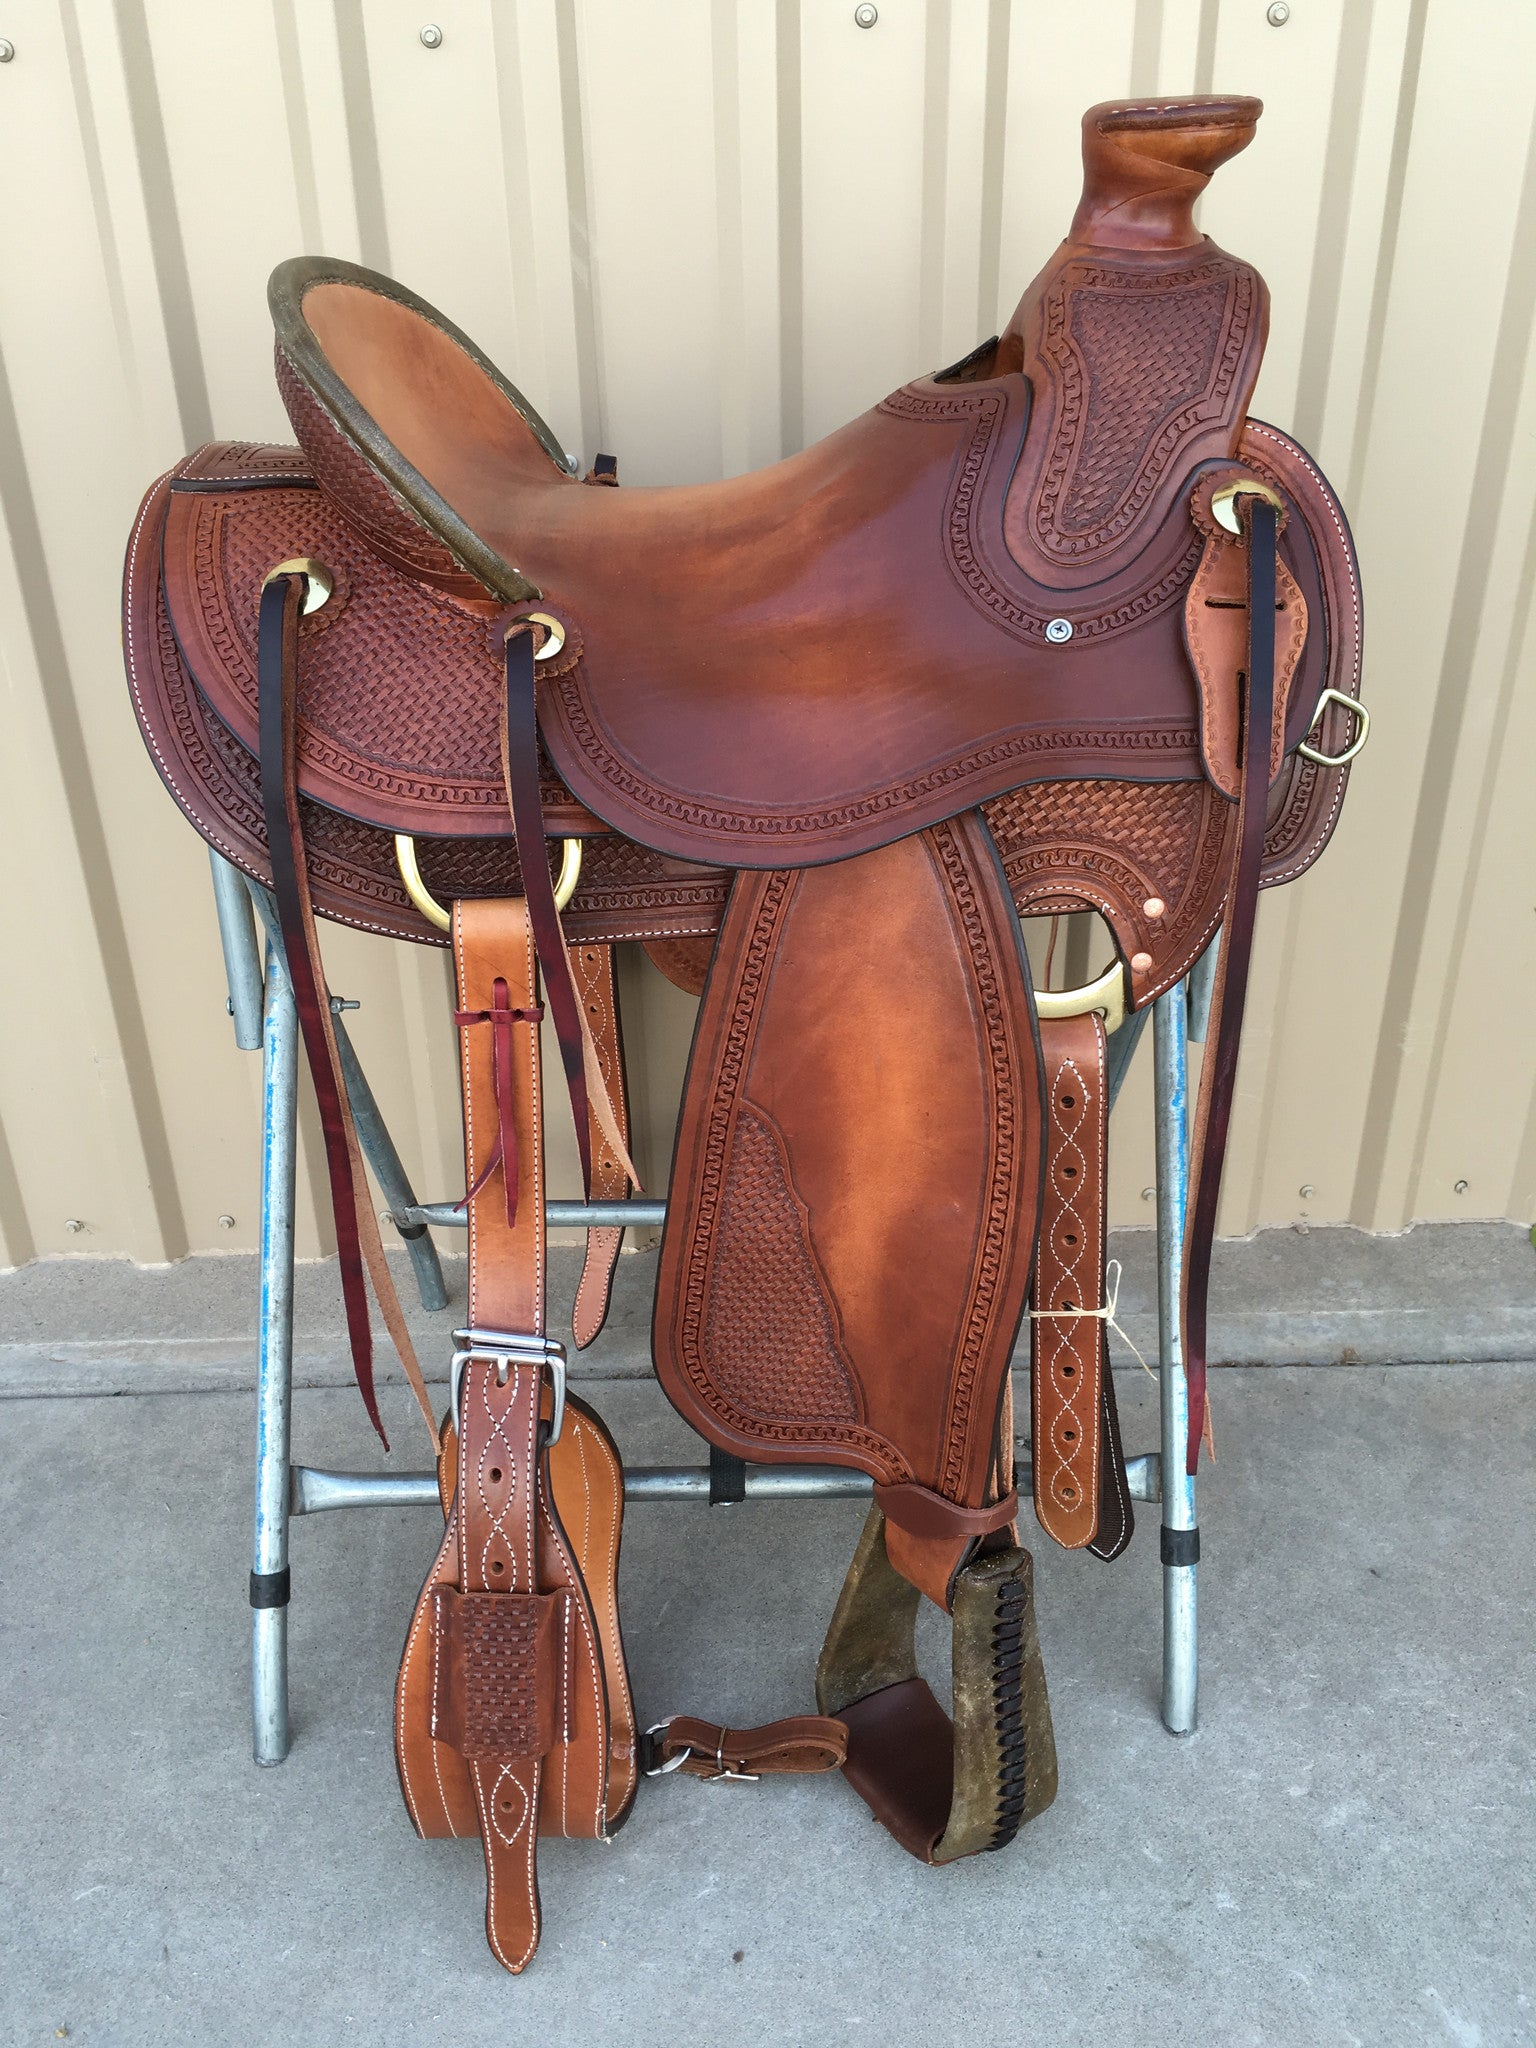 Corriente Ranch Wade Saddle SB407-A - The Sale Barn - 1